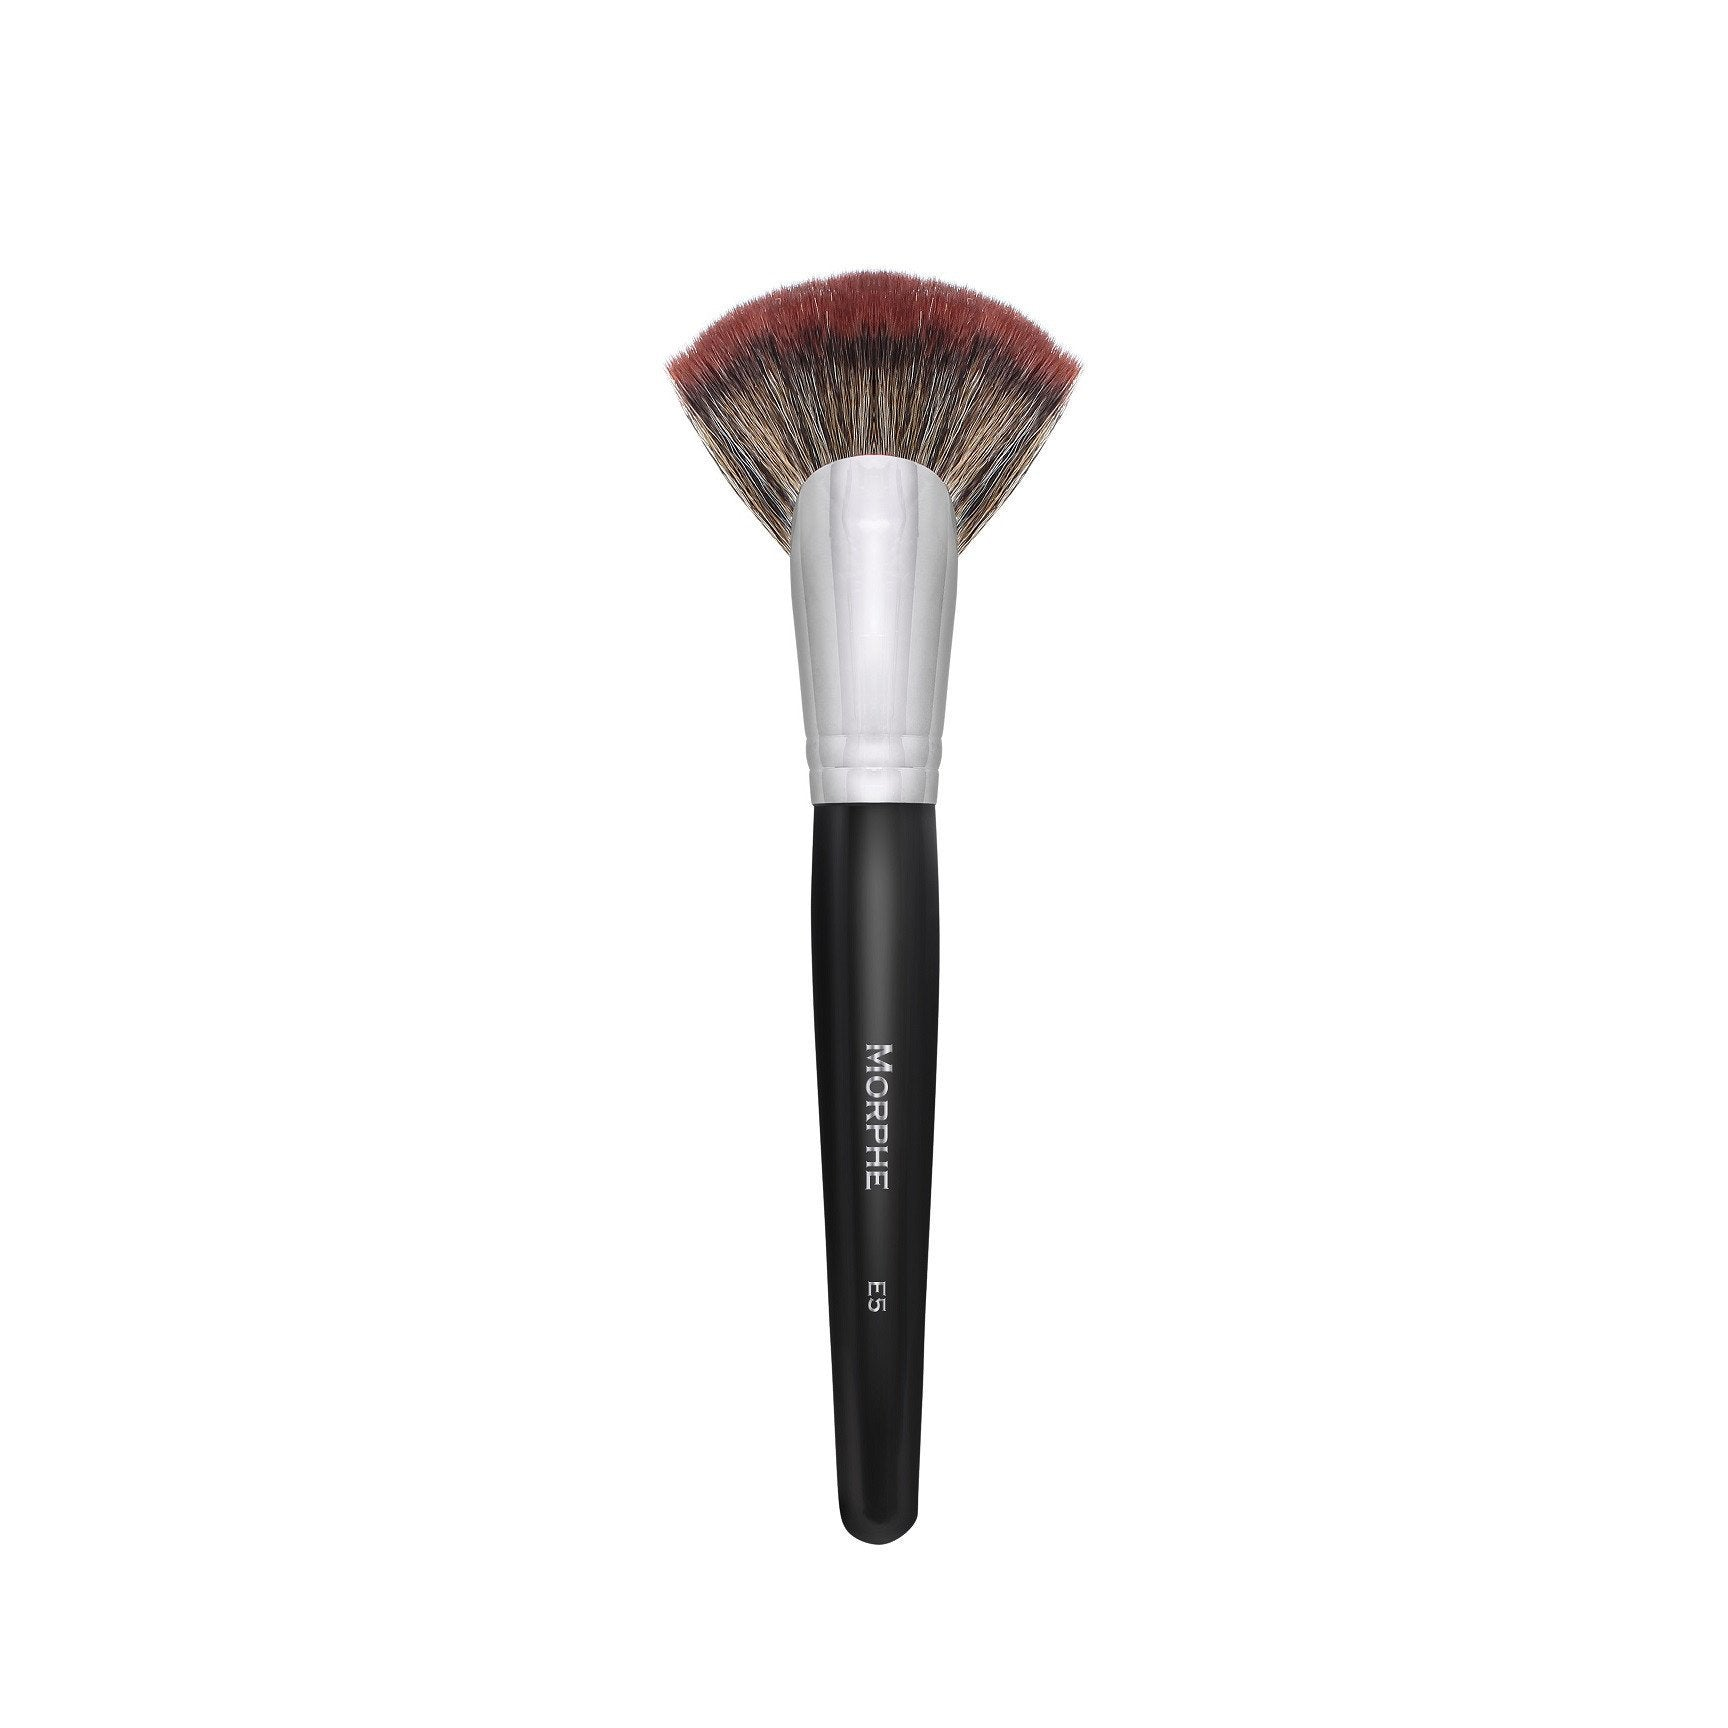 E5 - PRO MINI FAN BRUSH, view larger image